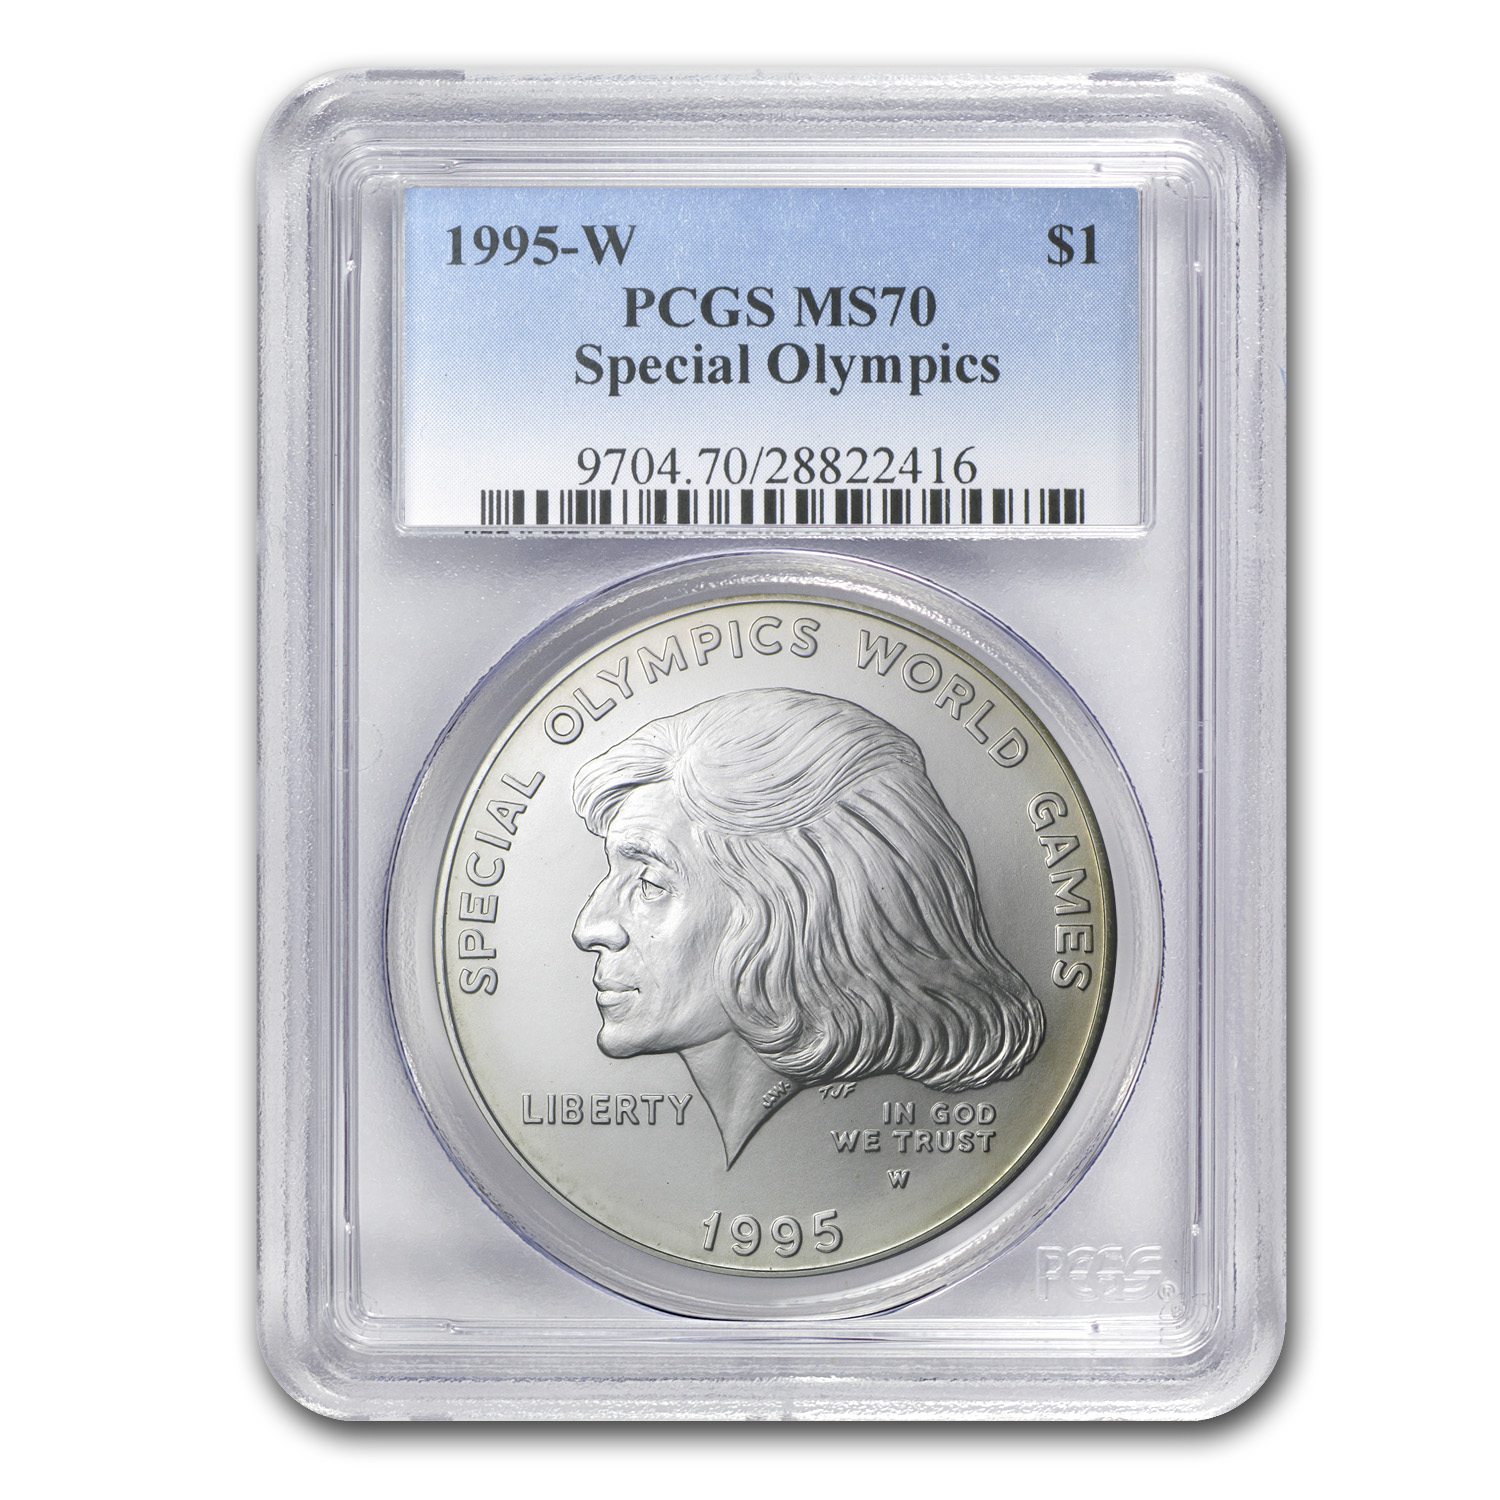 1995-W Special Olympics $1 Silver Commemorative MS-70 PCGS